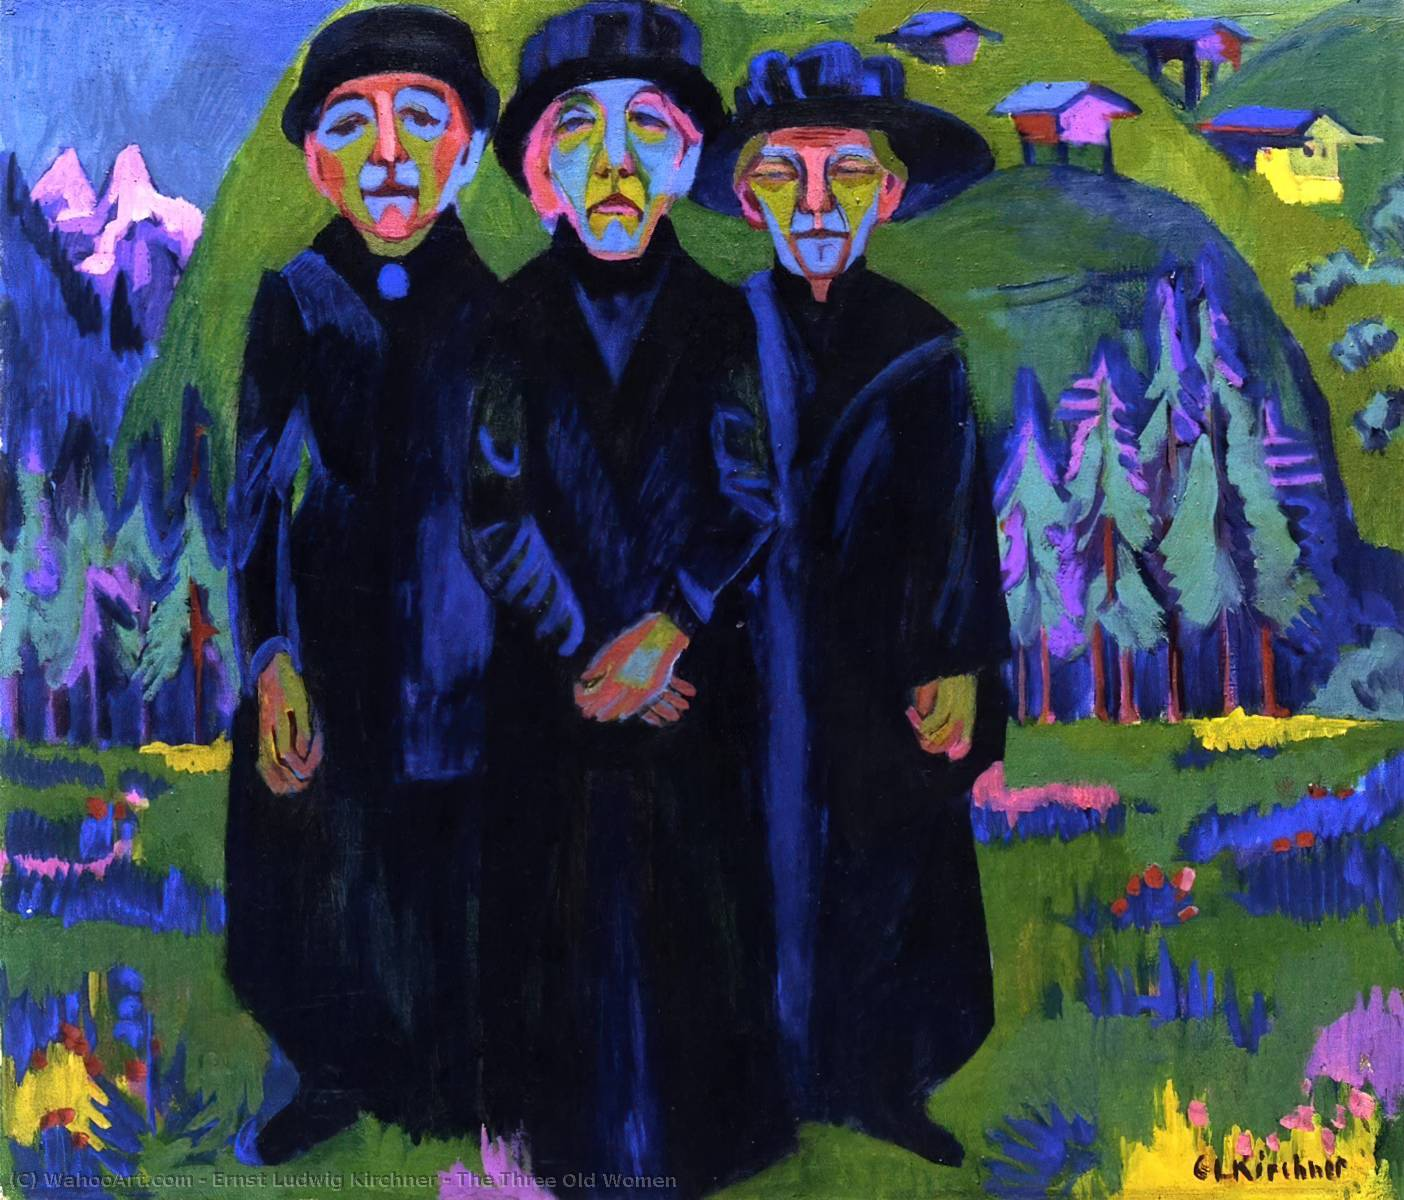 The Three Old Women, 1925 by Ernst Ludwig Kirchner (1880-1938, Germany) | WahooArt.com